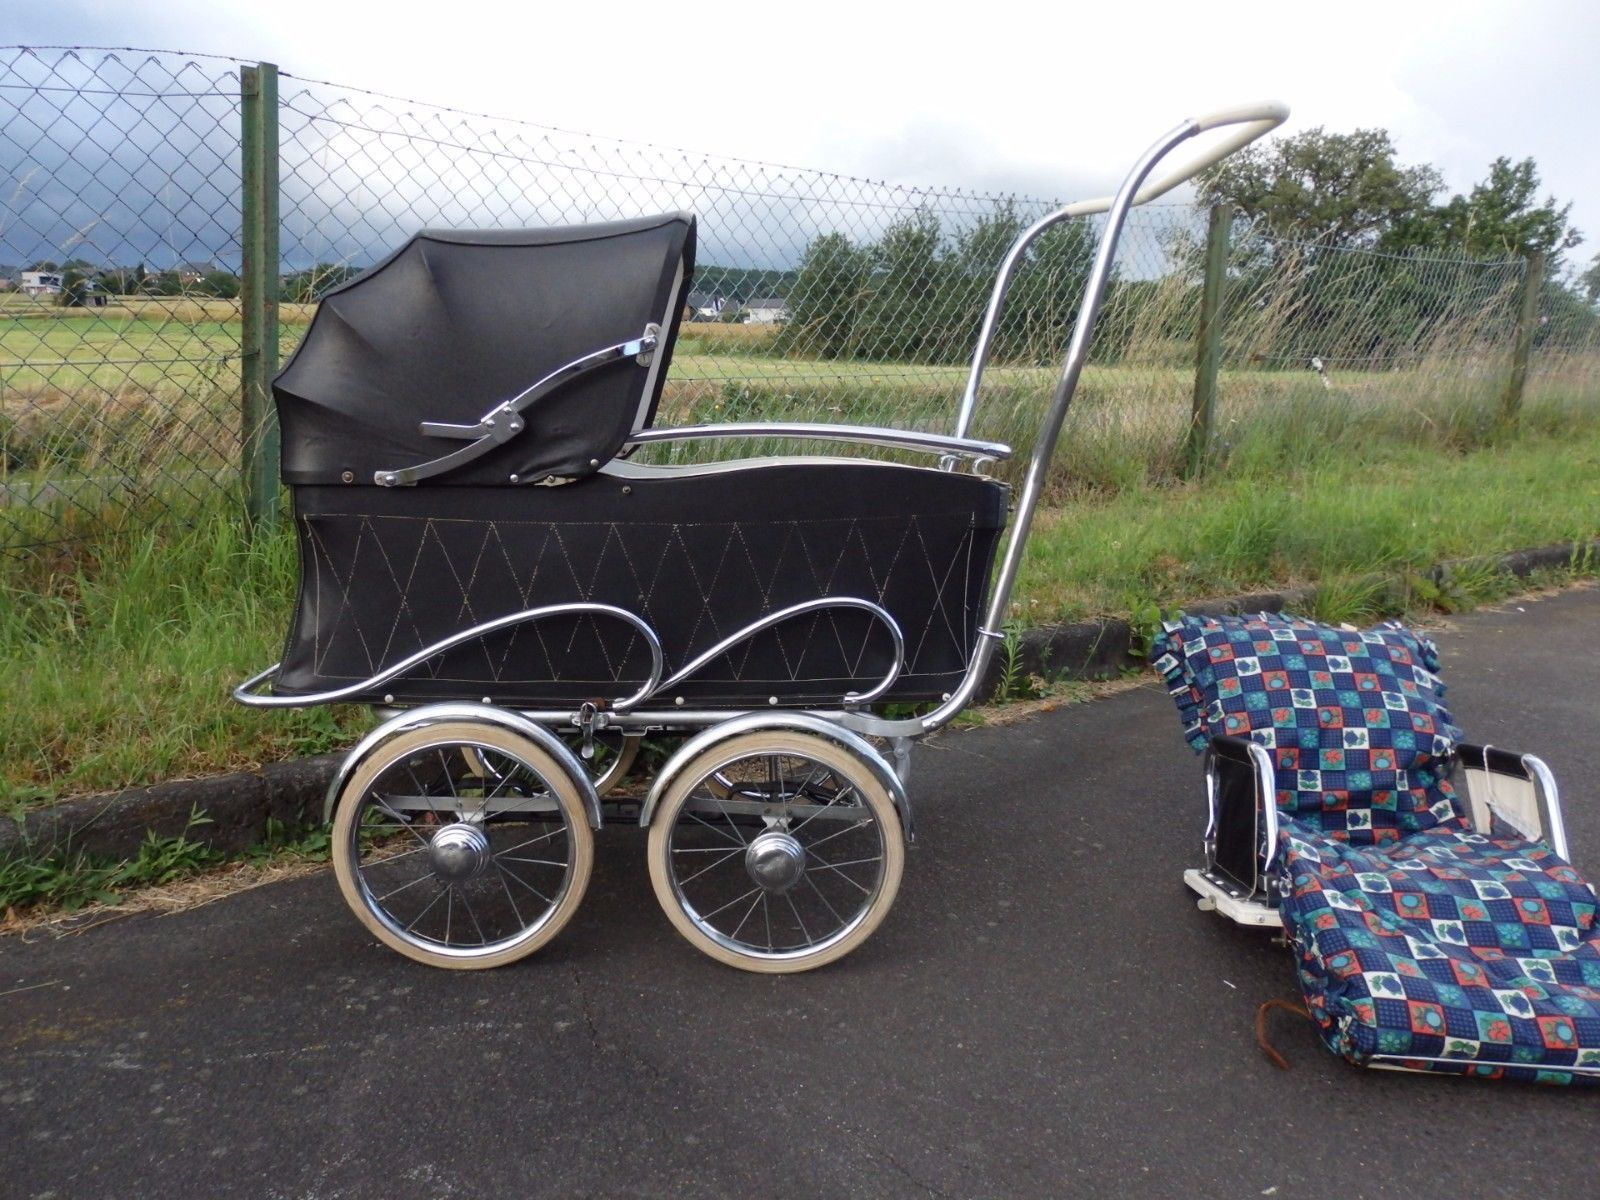 midcentury vintage pram rockabilly nostalgie kinderwagen sportwagen 50s nostalgie. Black Bedroom Furniture Sets. Home Design Ideas